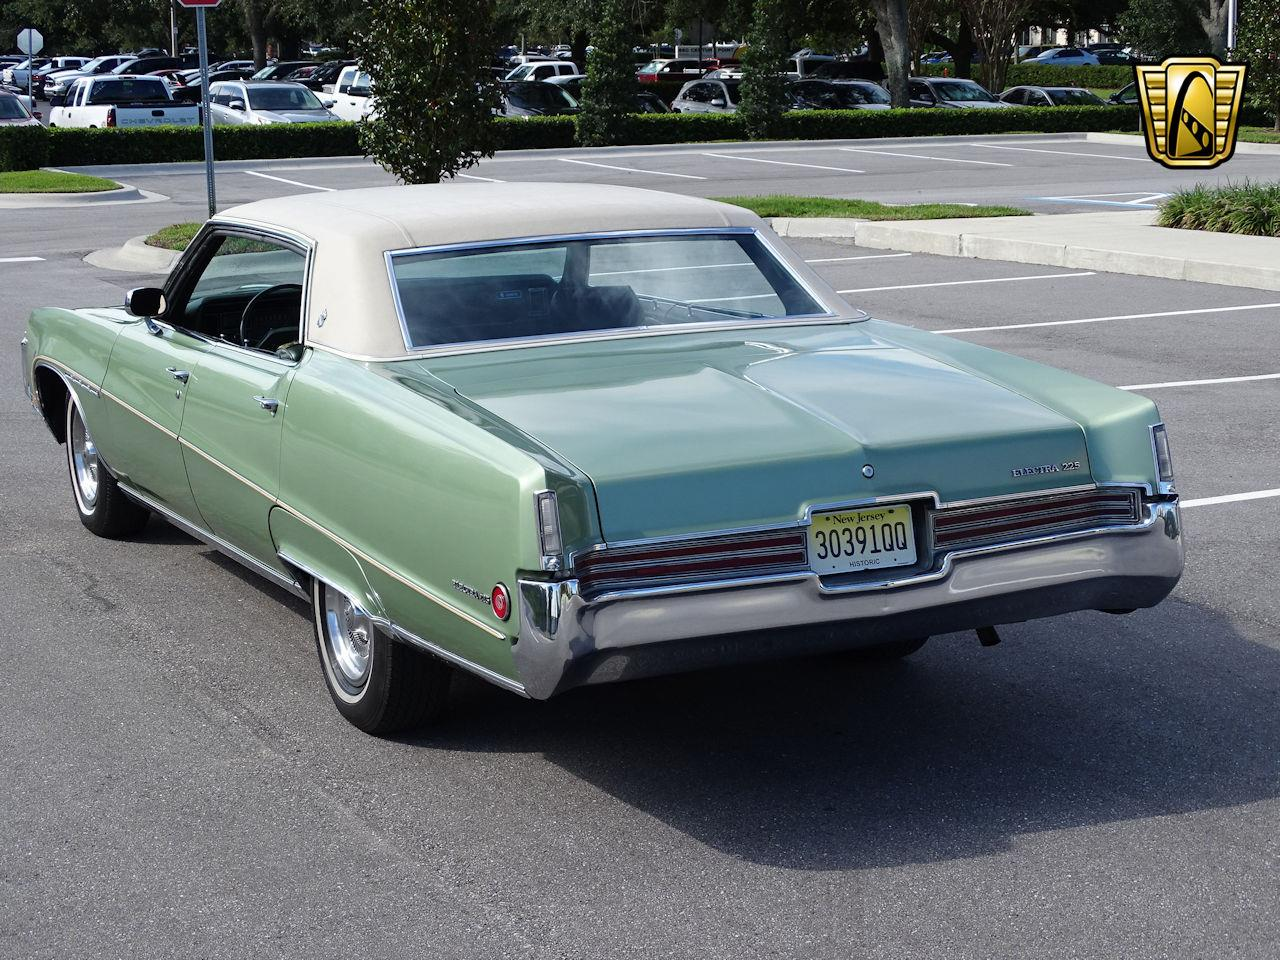 Large Picture of Classic 1970 Buick Electra located in Lake Mary Florida - $10,995.00 - KE2P